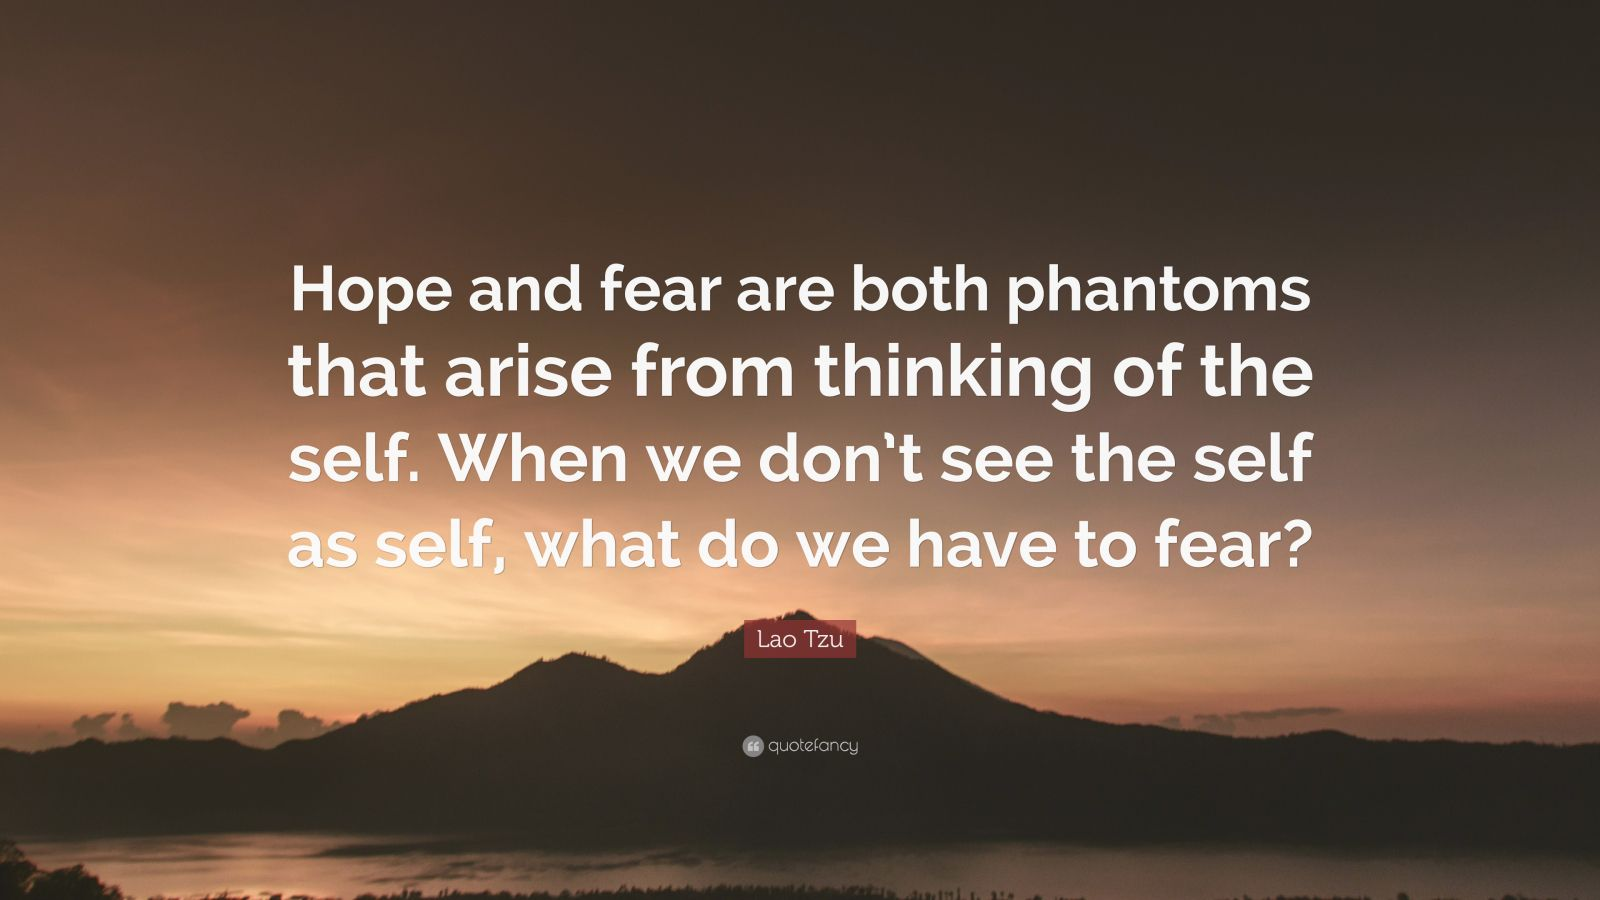 """Lao Tzu Quote: """"Hope and fear are both phantoms that arise from thinking of the self. When we don't see the self as self, what do we have to fear?"""""""